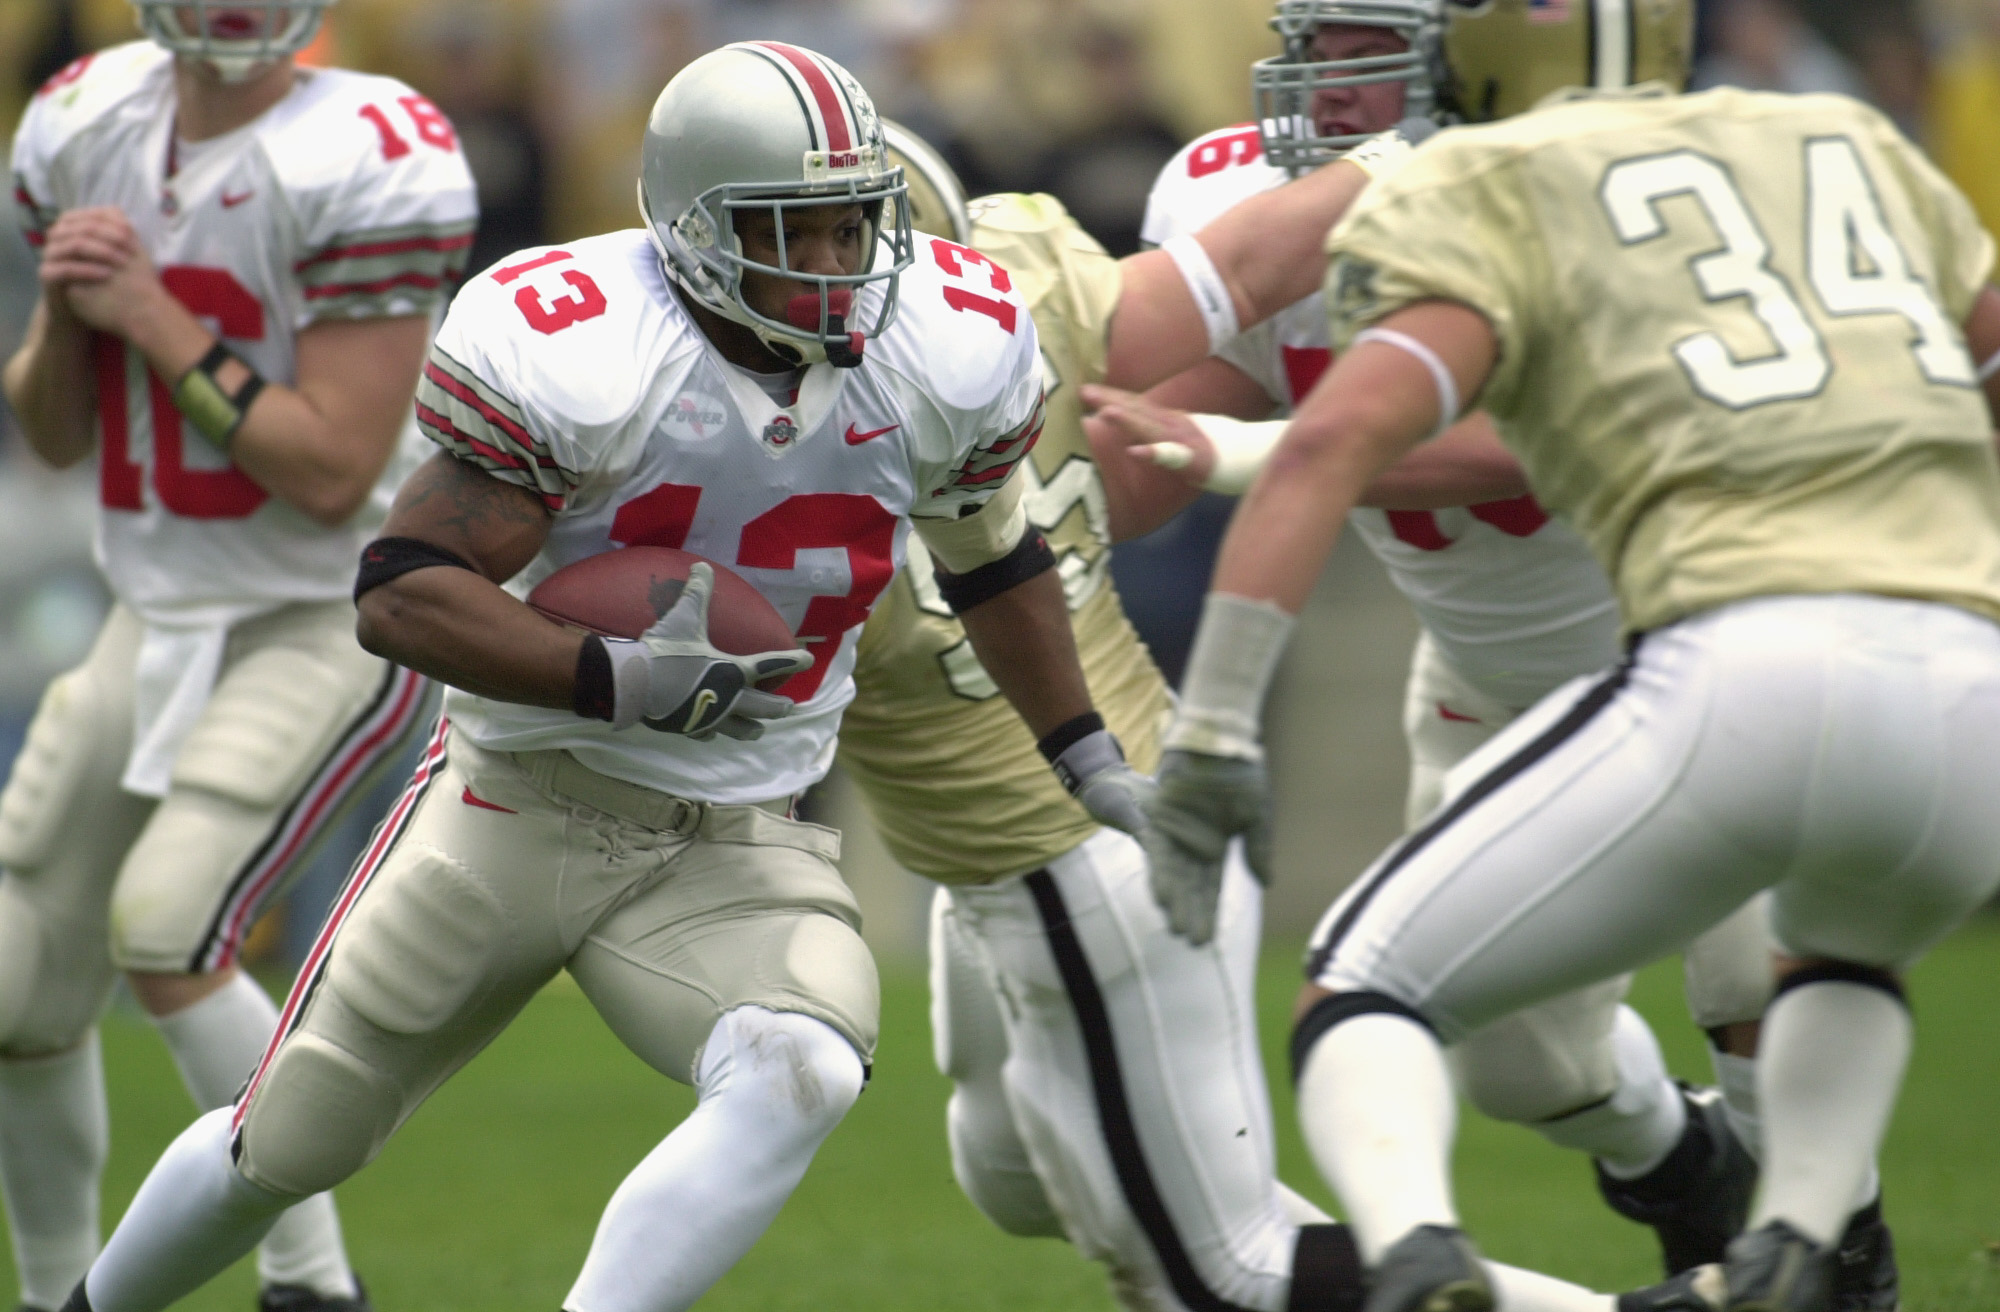 WEST LAFAYETTE, IN - NOVEMBER 9:  Tailback Maurice Clarett #13 of the Ohio State Buckeyes runs with the ball during the Big 10 Conference football game against the Purdue Boilermakers at Ross-Ade Stadium on November 9, 2002 in West Lafayette, Indiana. (Ph